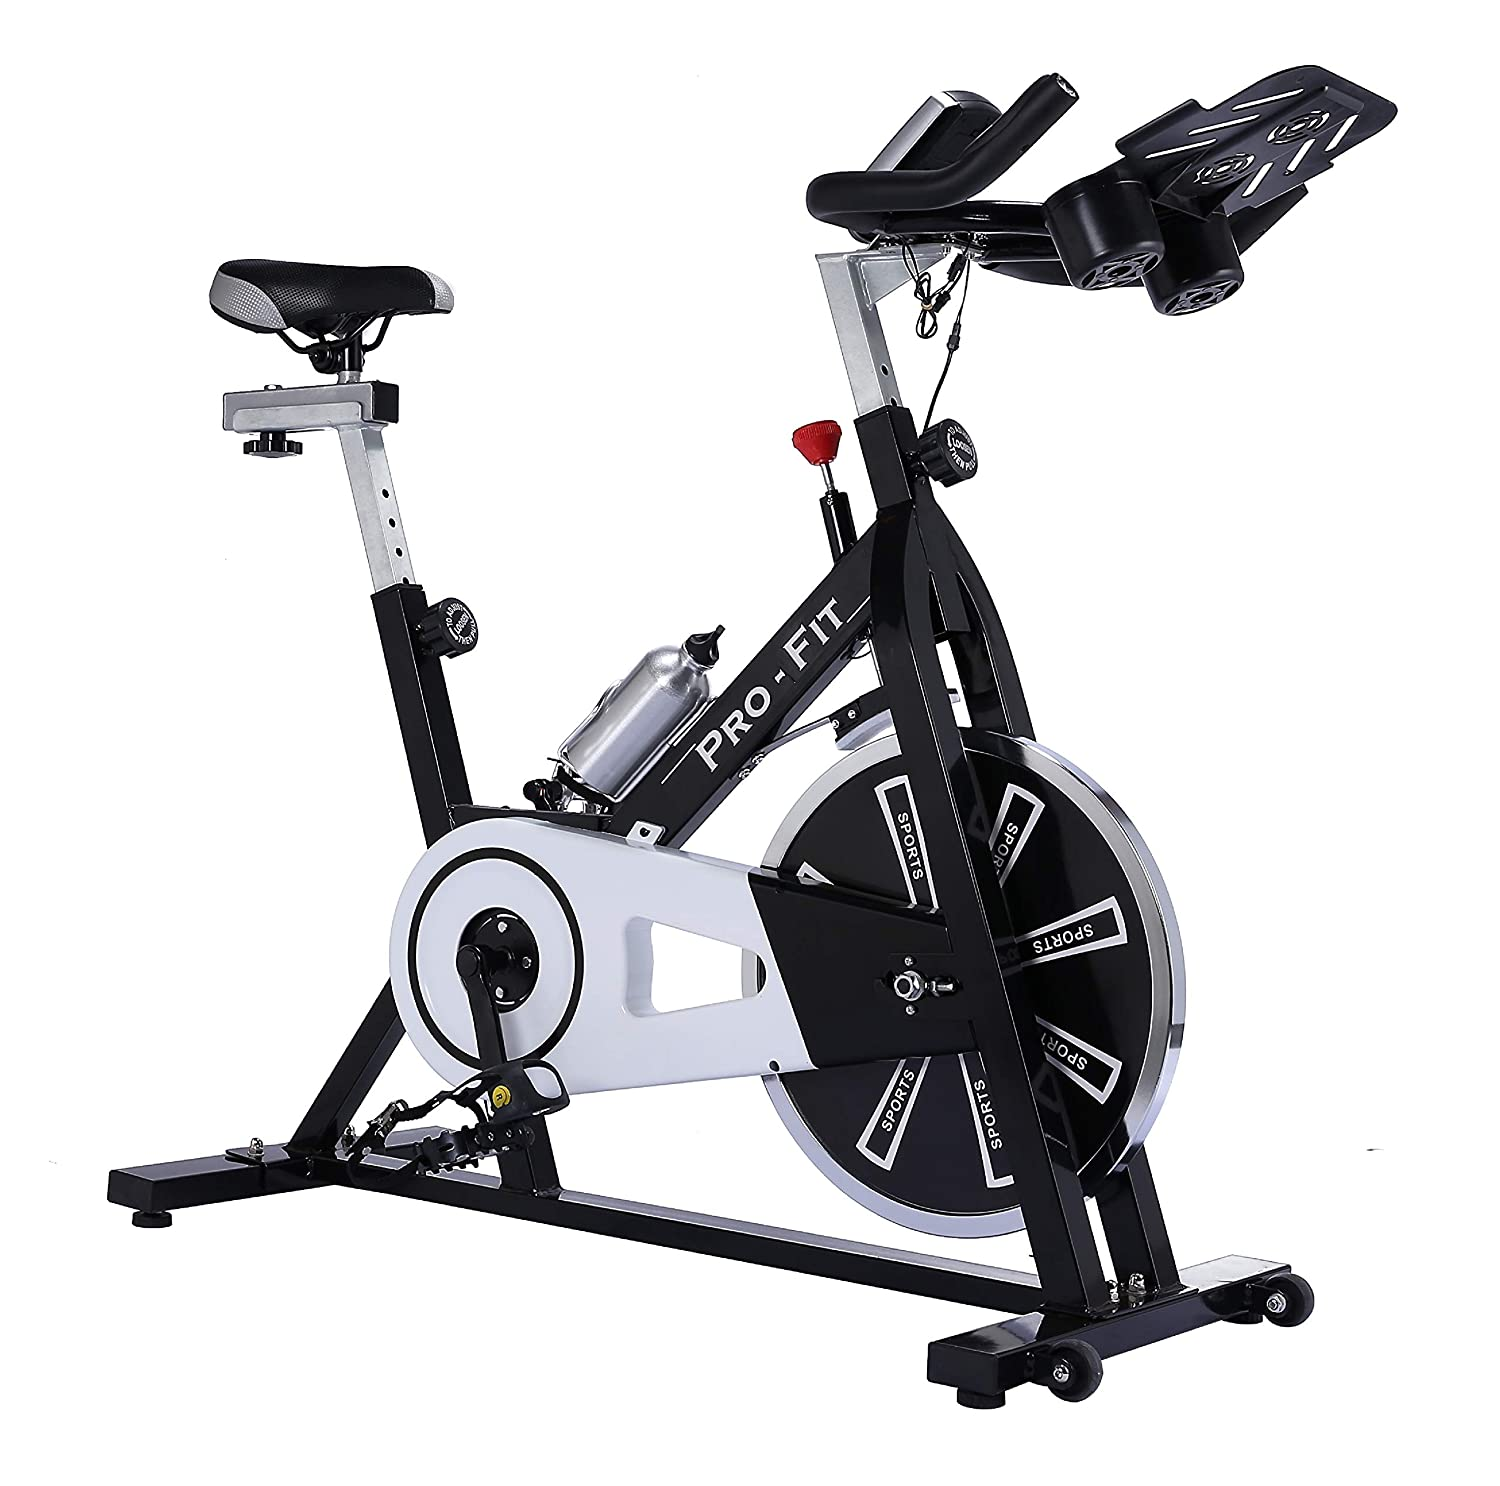 Indoor Cycling Home Exercise Bike 13kg Smooth Belt Driven Flywheel